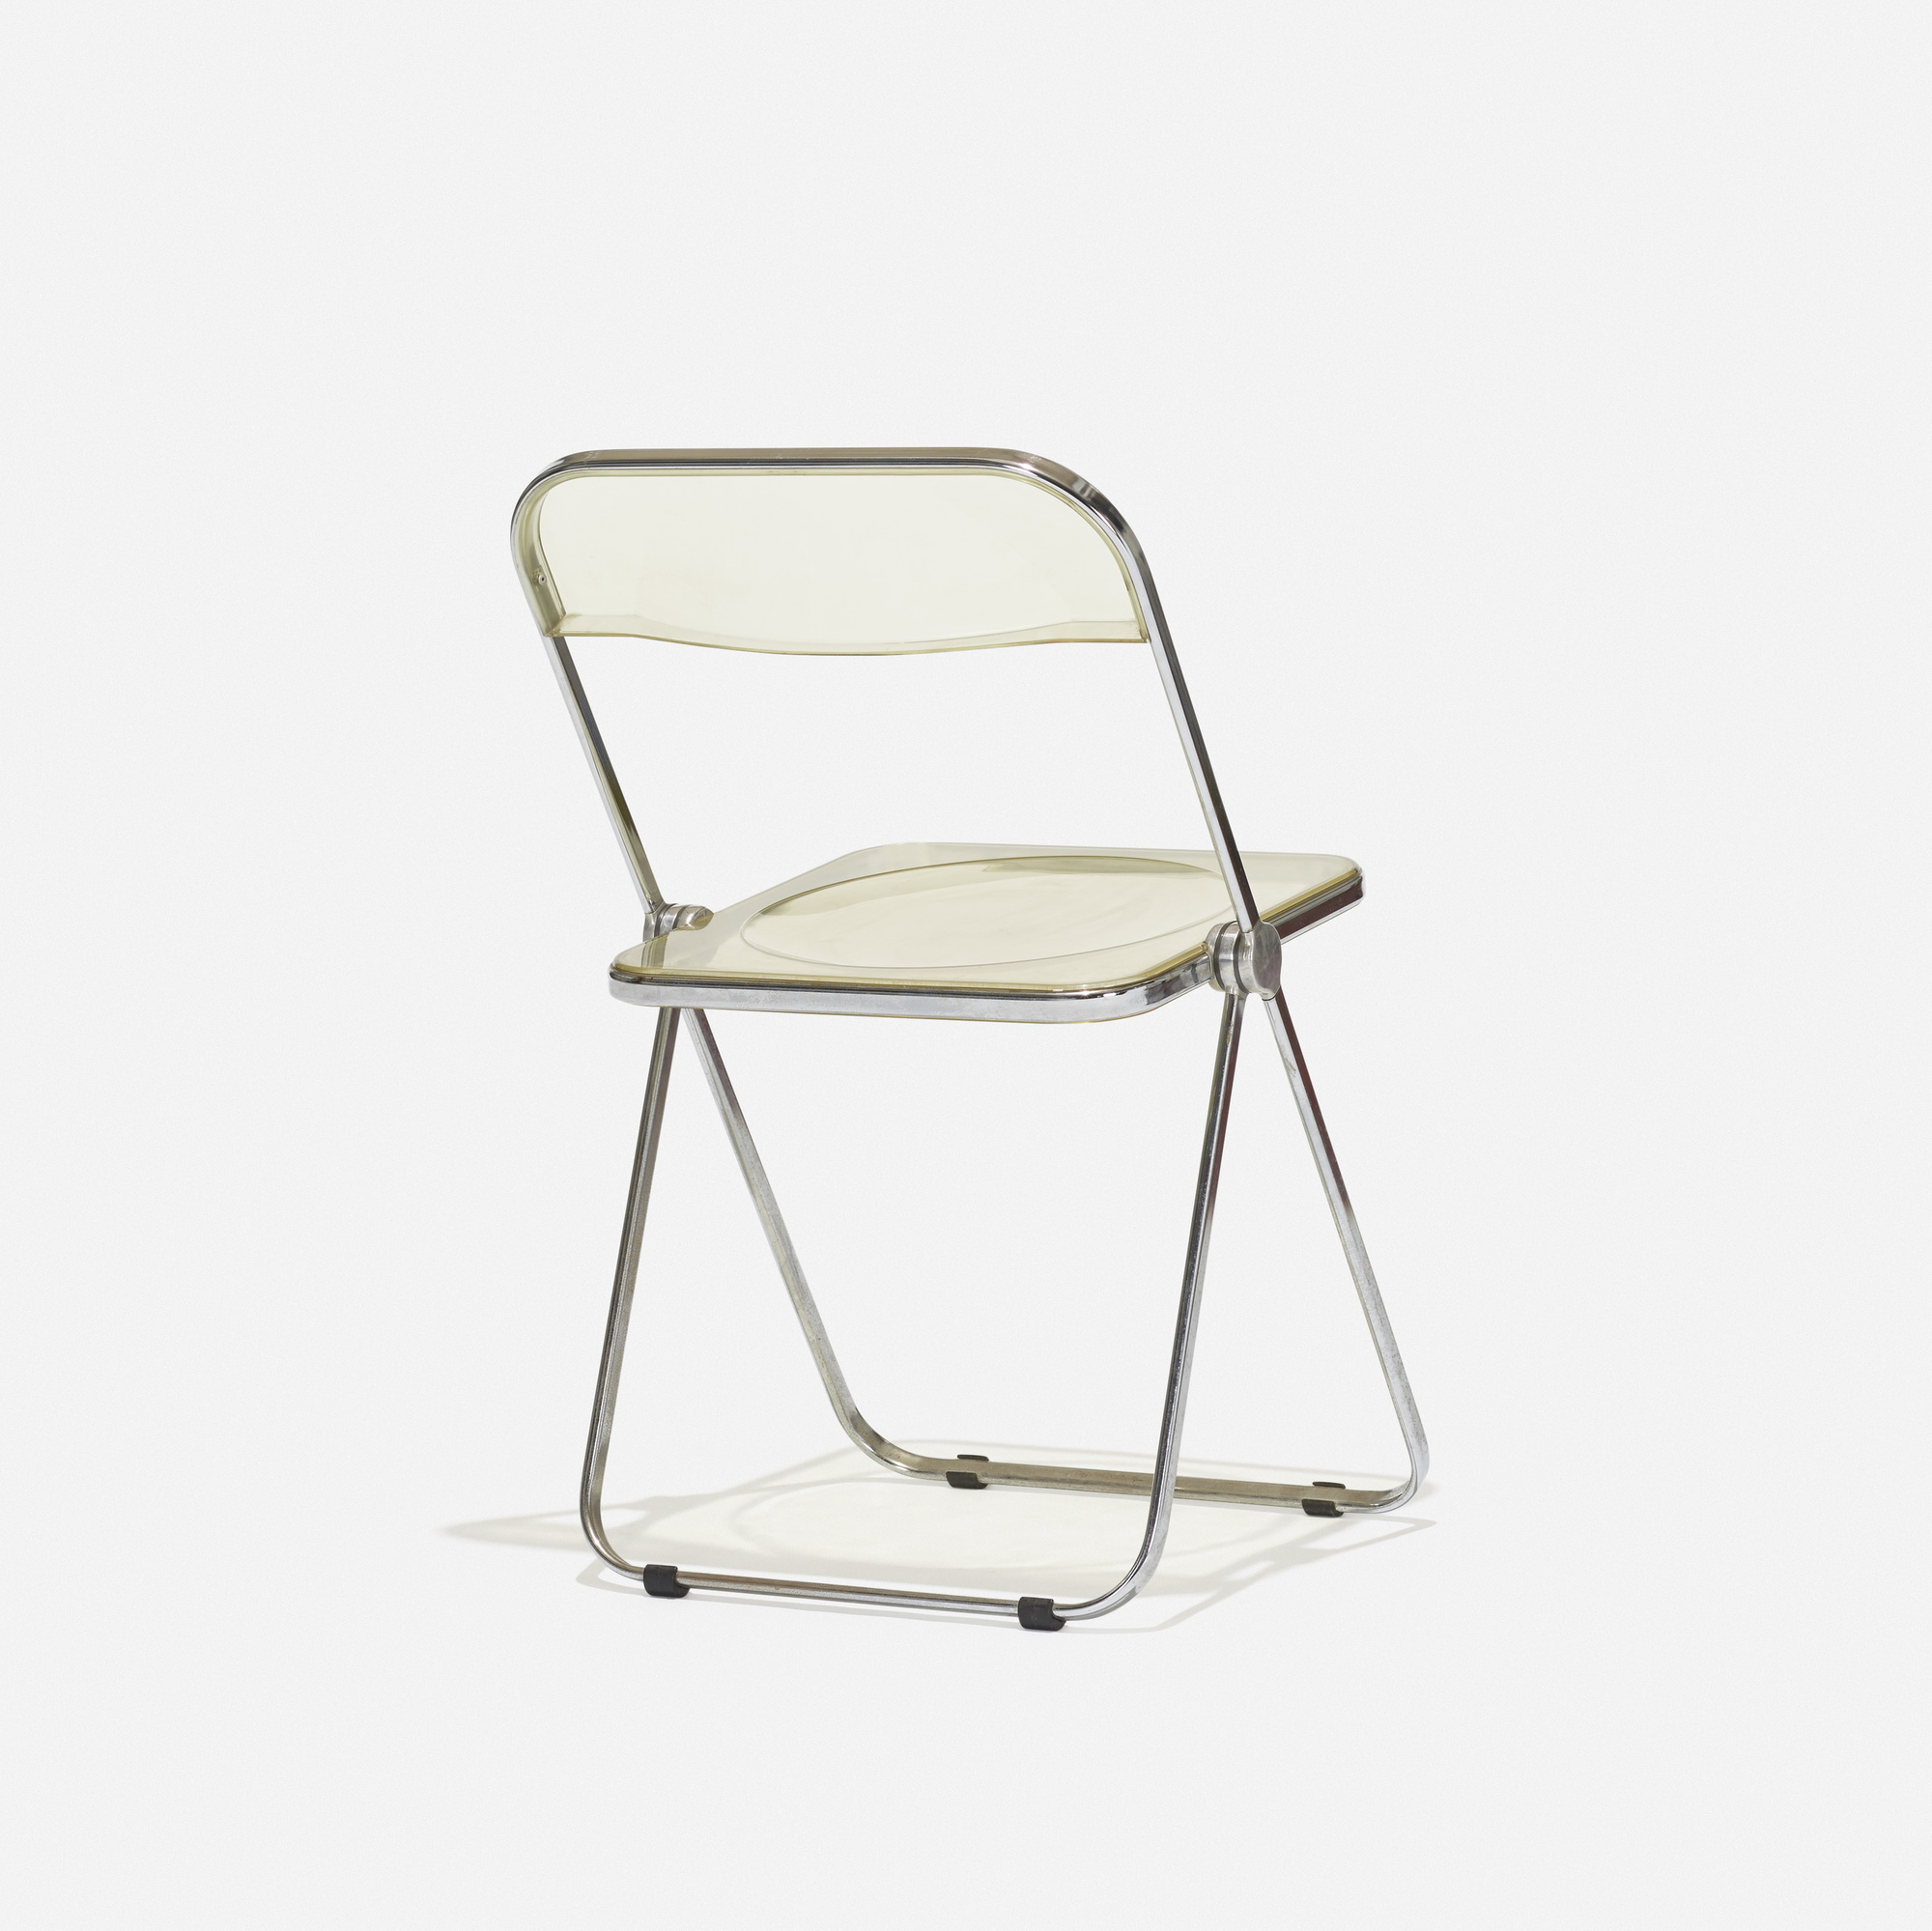 420: Giancarlo Piretti / Plia folding chair (1 of 3)